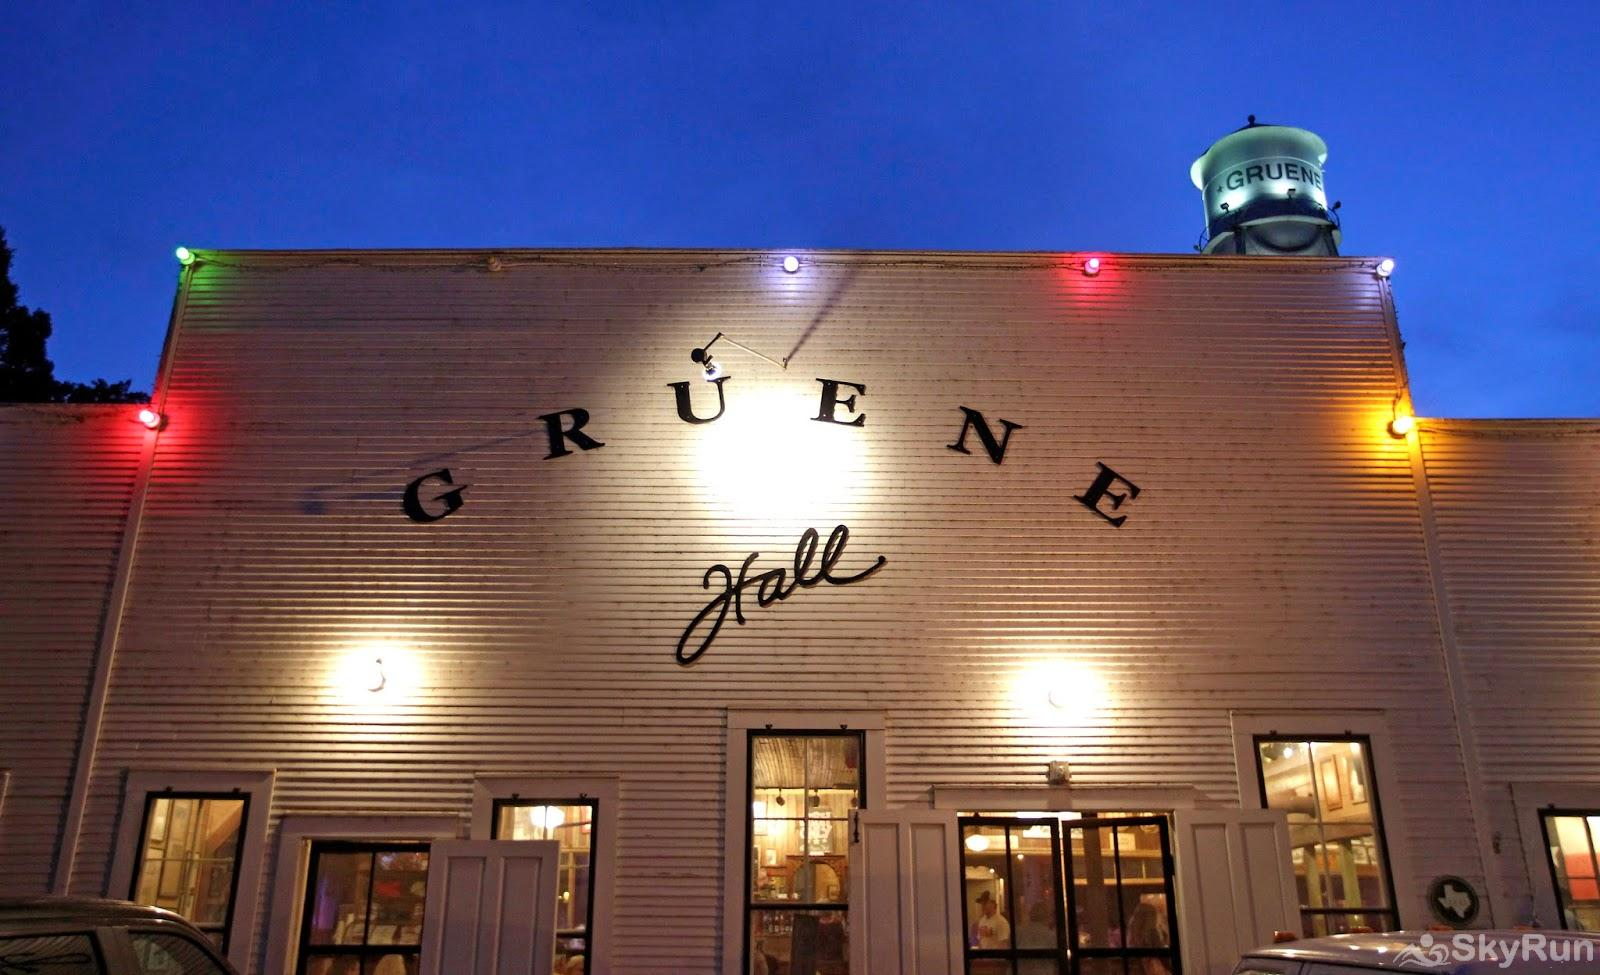 MAVERICK'S RIVER HAUS & GUEST HAUS Gruene Hall and Historic District, 12 miles away